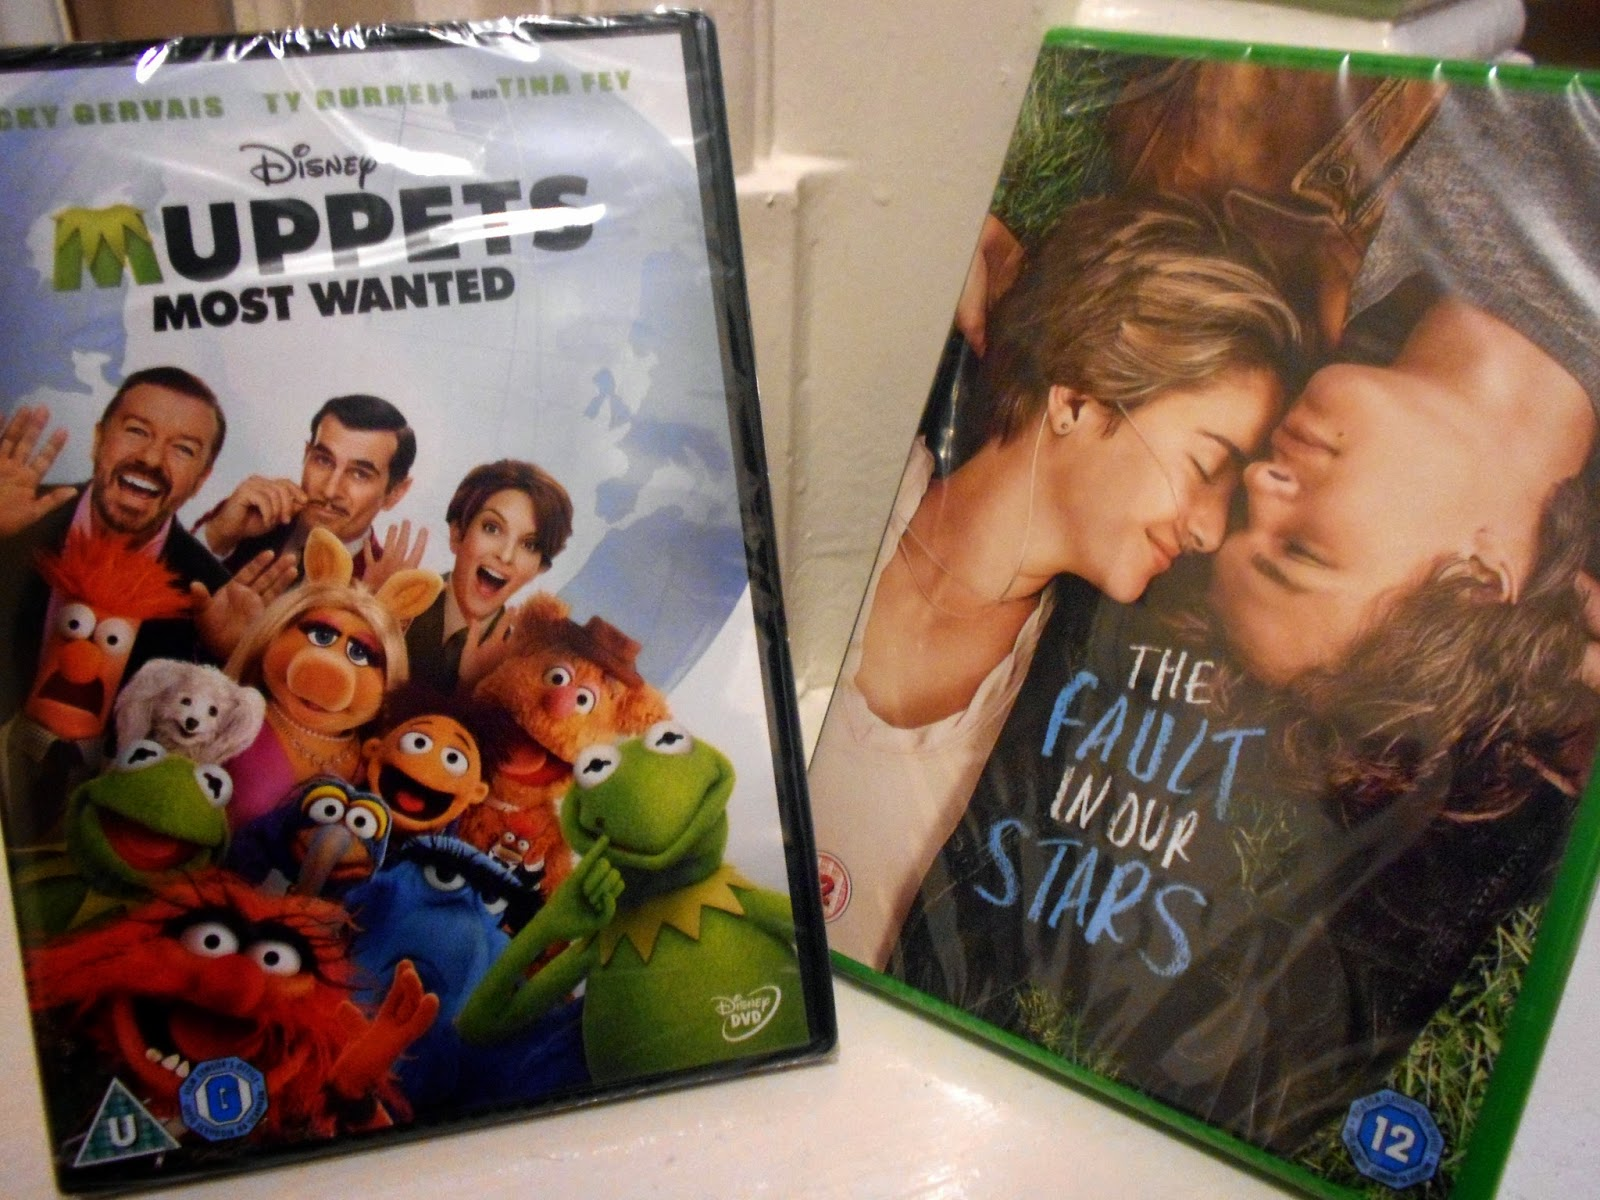 DVDs - Muppets Most Wanted and The Fault In Our Stars